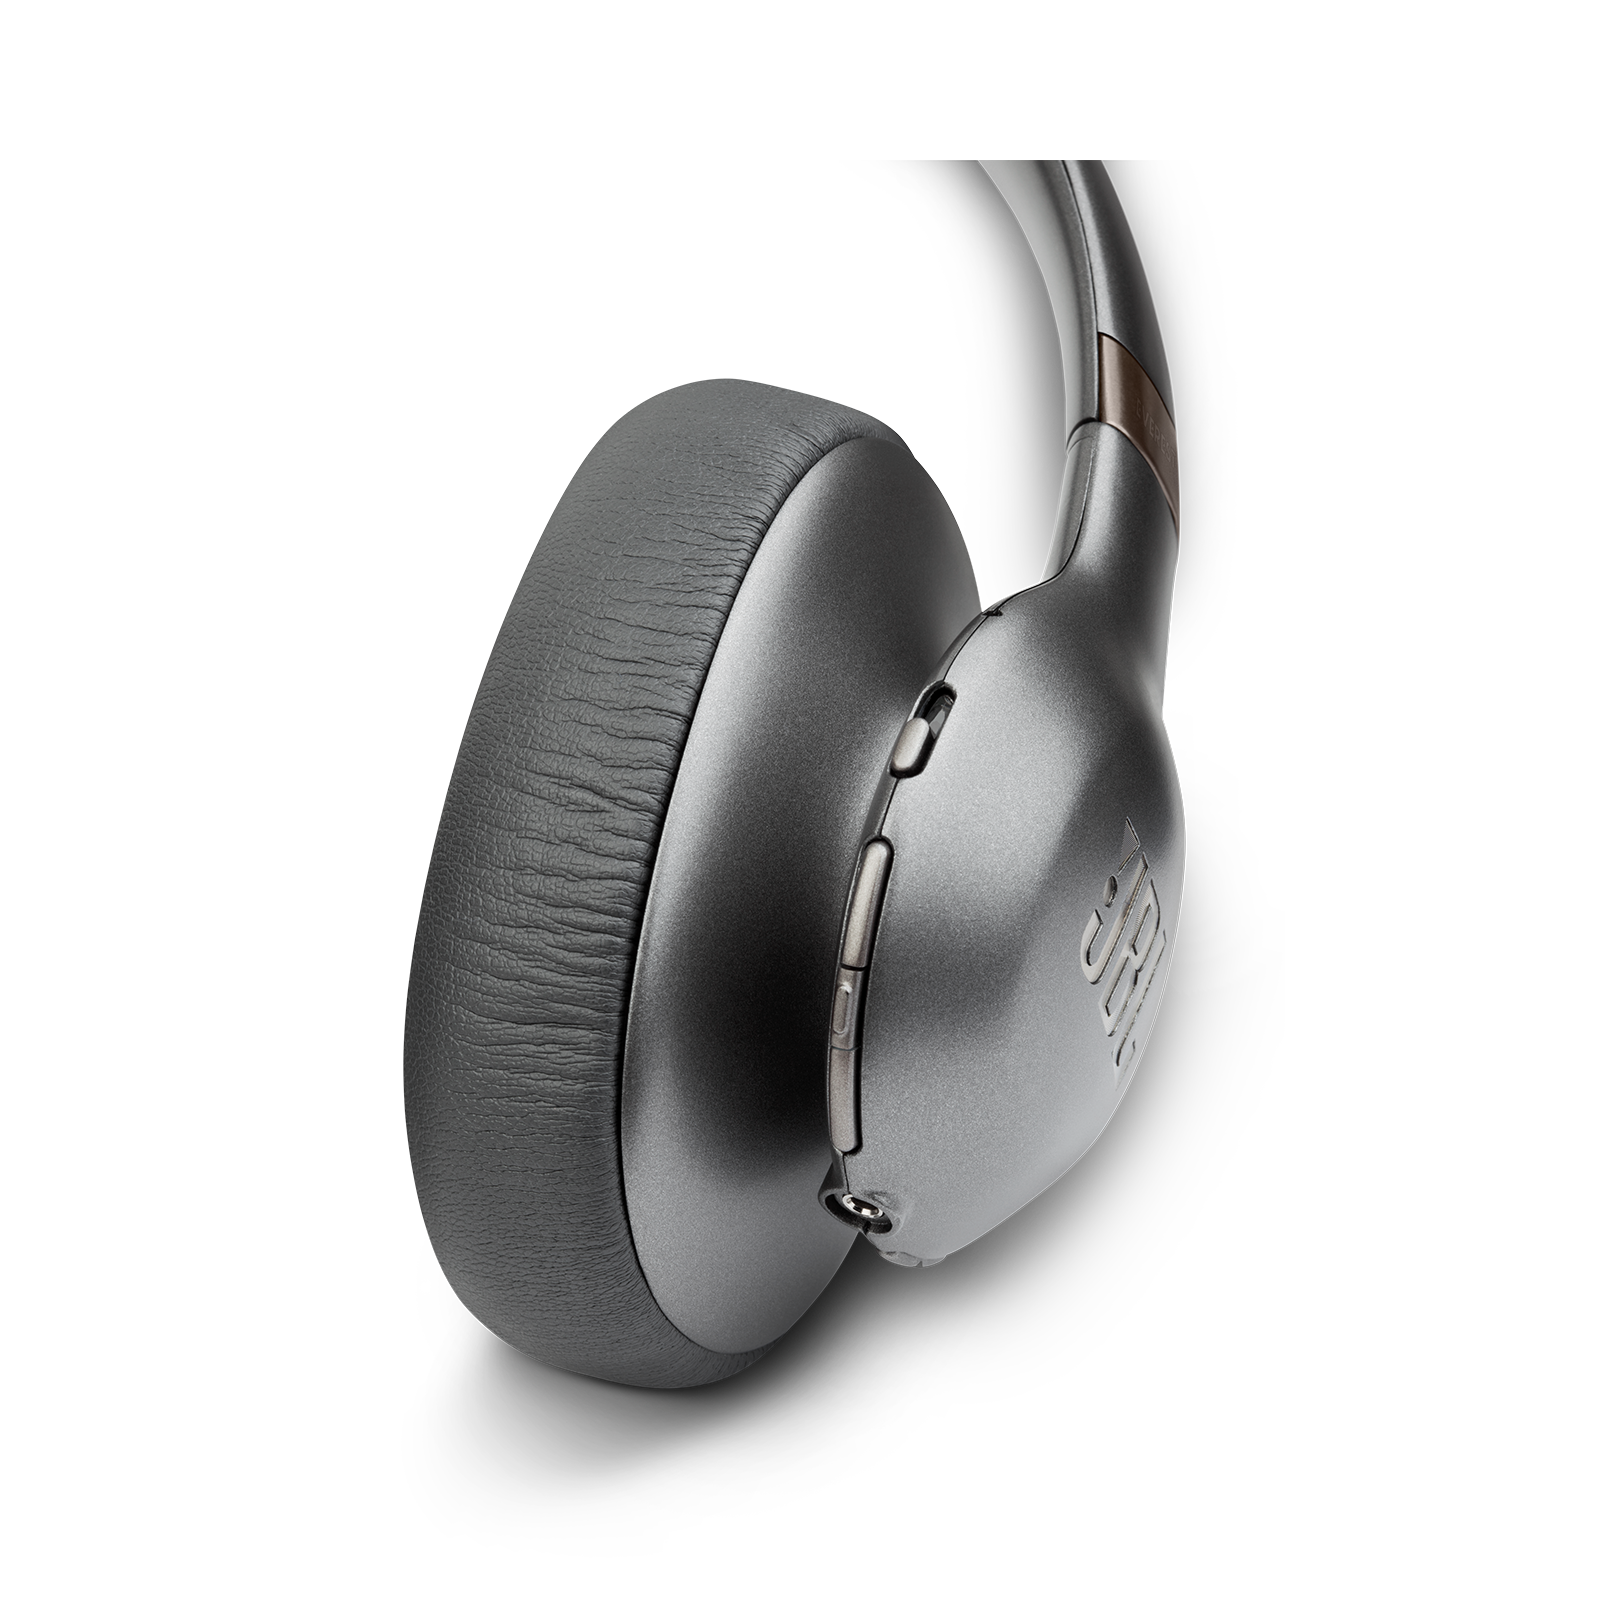 JBL EVEREST™ ELITE 750NC - Gun Metal - Wireless Over-Ear Adaptive Noise Cancelling headphones - Detailshot 2